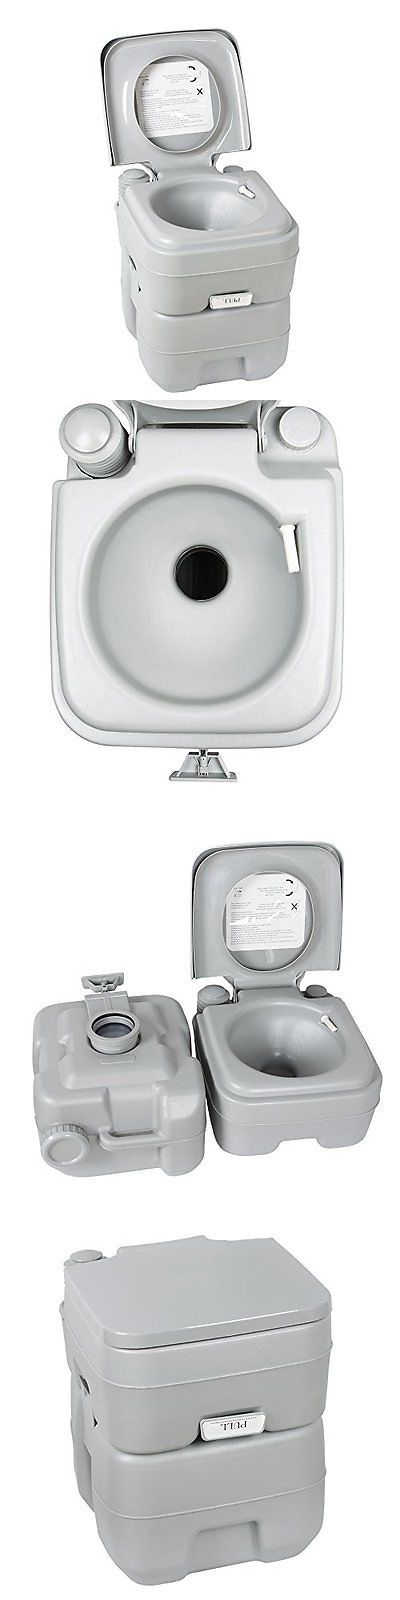 Portable Toilets and Accessories 181397: Flexzion Portable Camping Toilet 5 Gallon Recreation Flush Potty Commode 20L Ca -> BUY IT NOW ONLY: $91.68 on eBay!